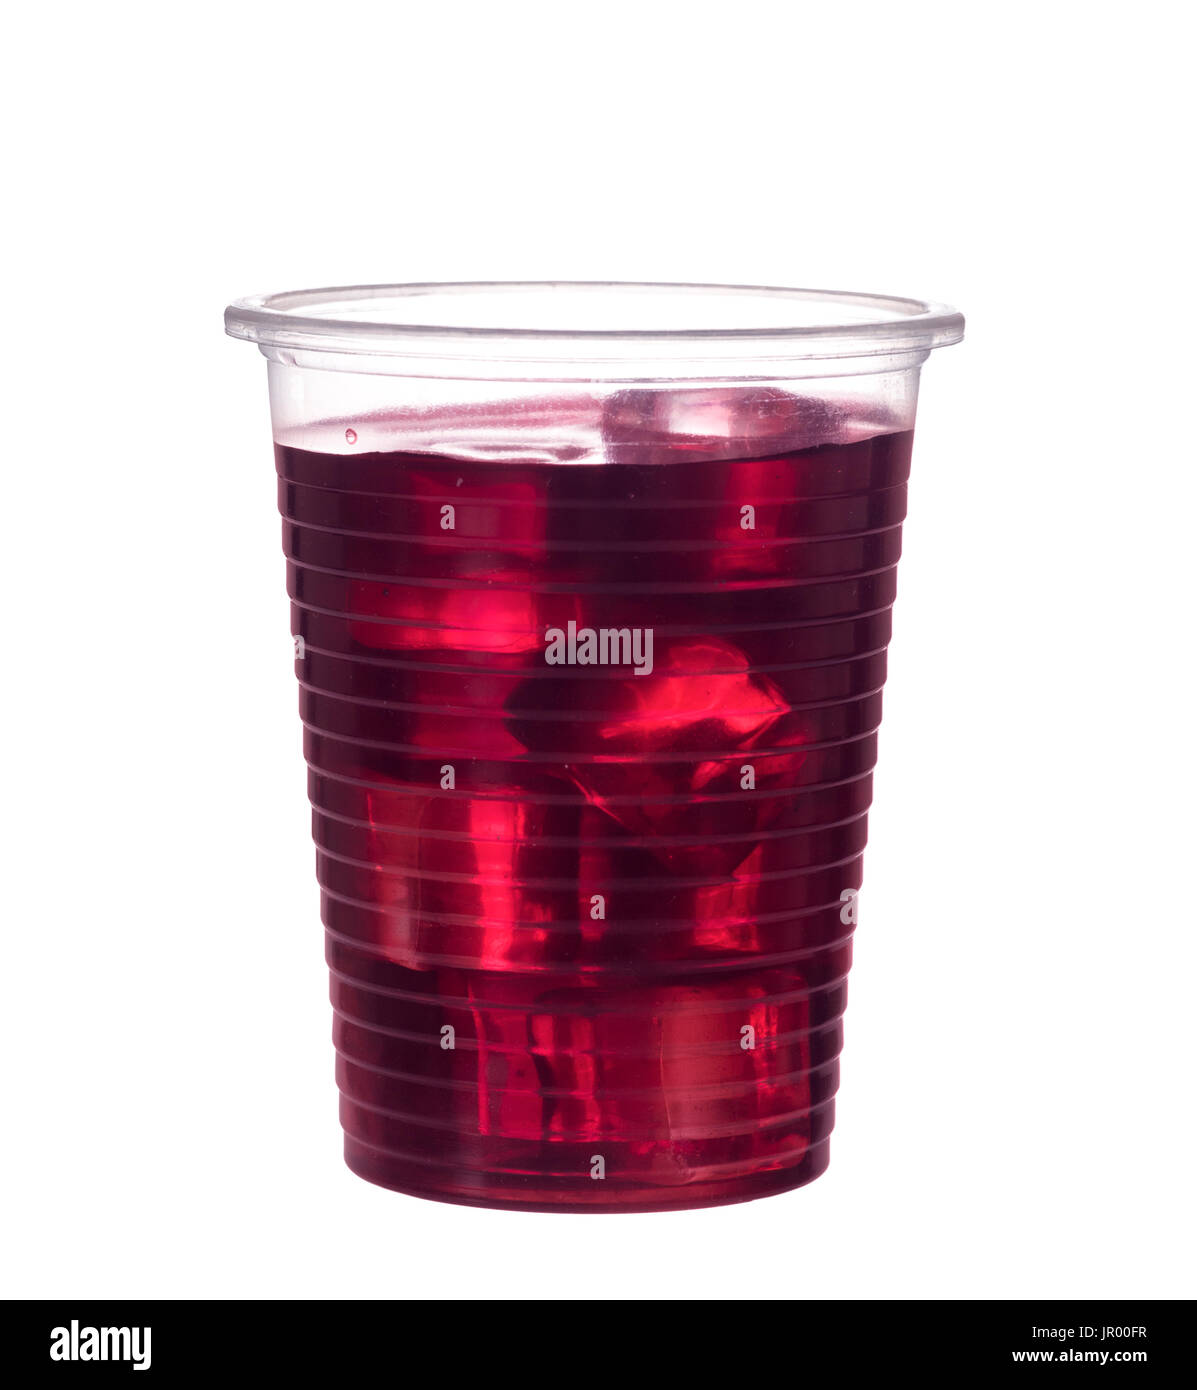 Home made fruit cordial with blackcurrant juice. - Stock Image